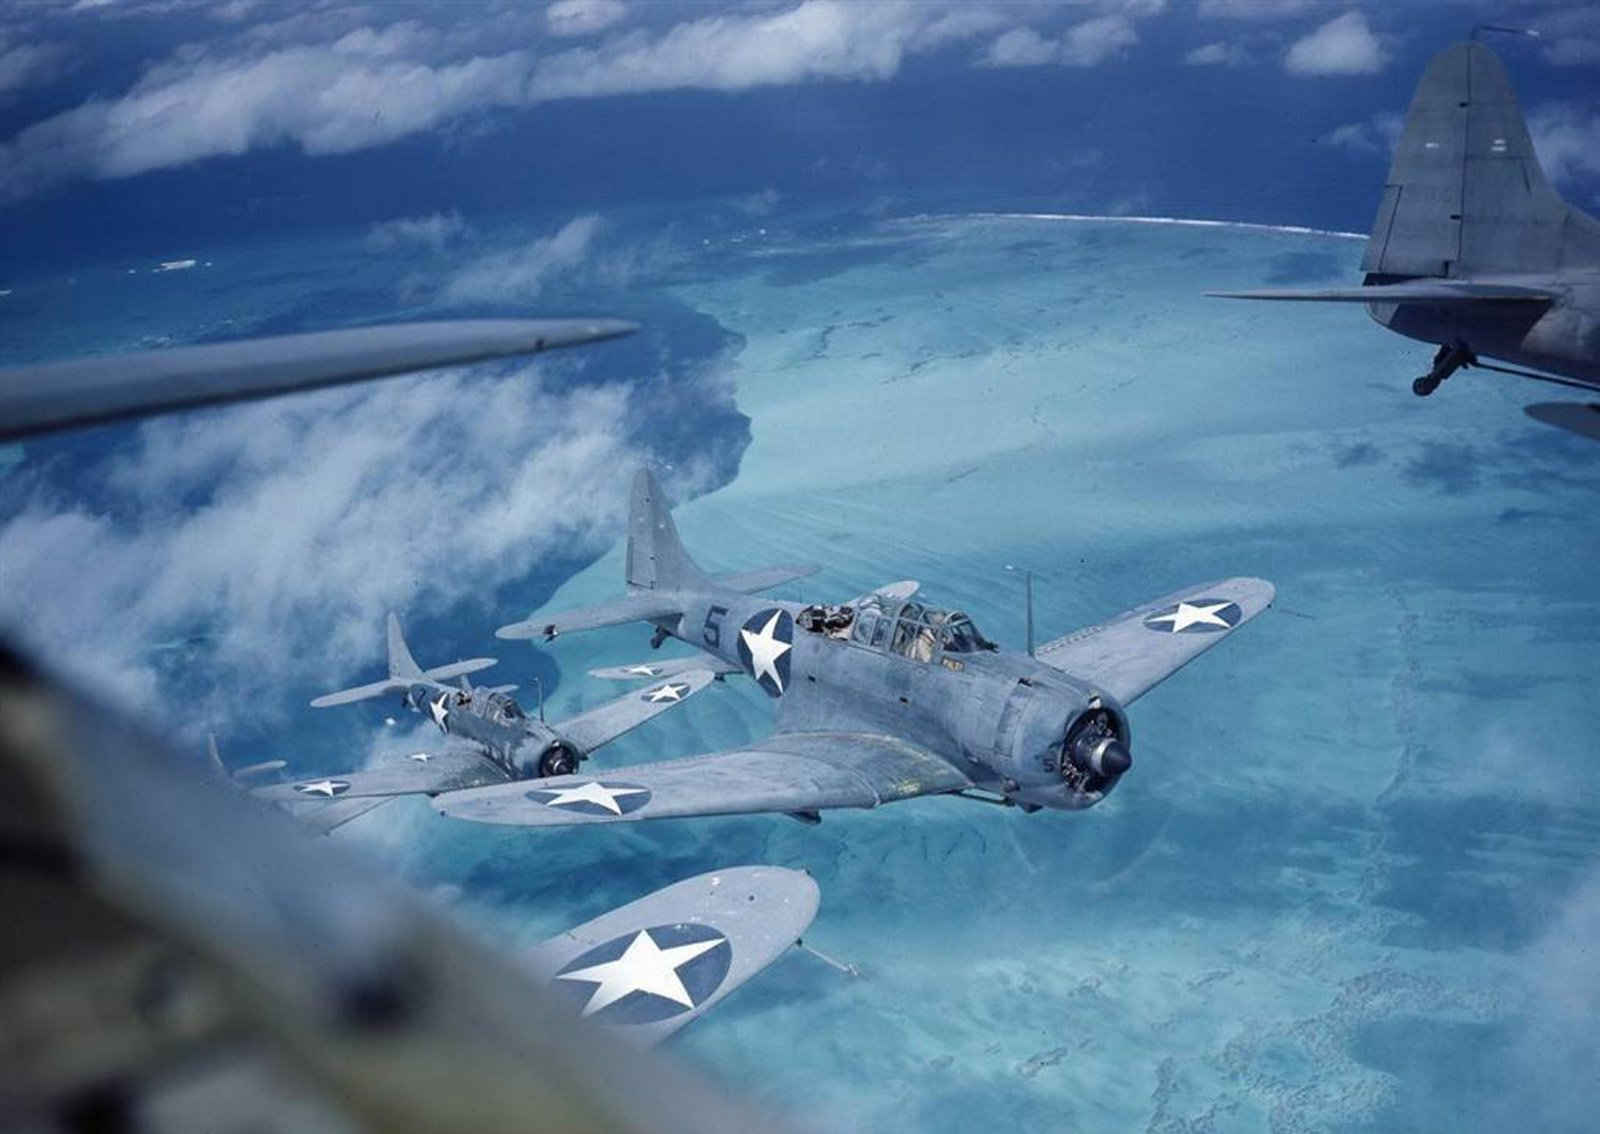 Douglas SBD Dauntless Wallpaper and Background Image 1600x1134 1600x1134